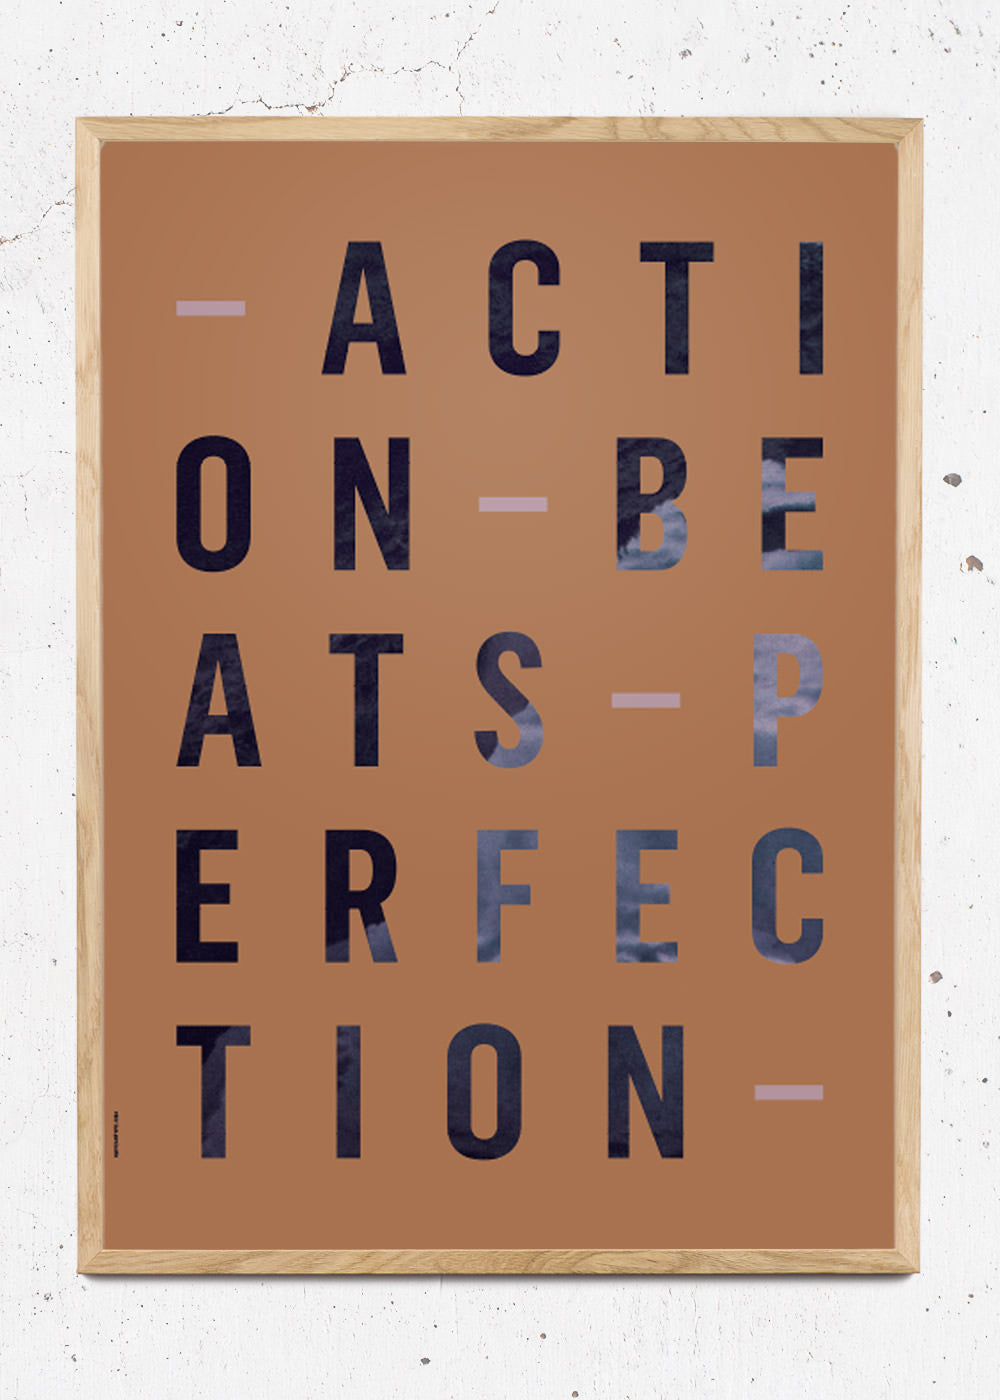 Plakat af Action Perfection - Amber fra I Love My Type